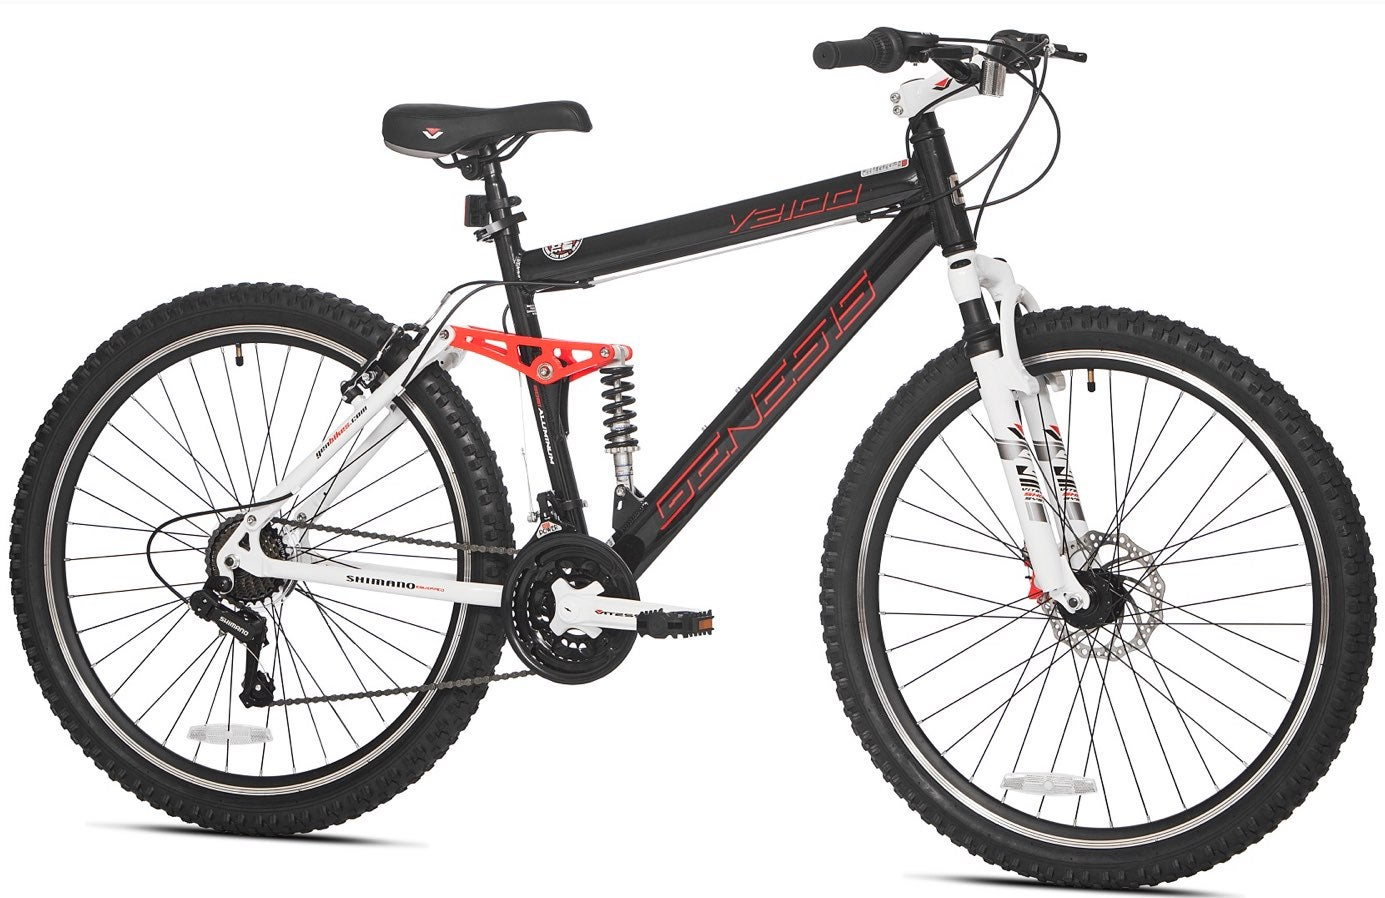 Genesis 27.5 Inch Men's Mountain Bike